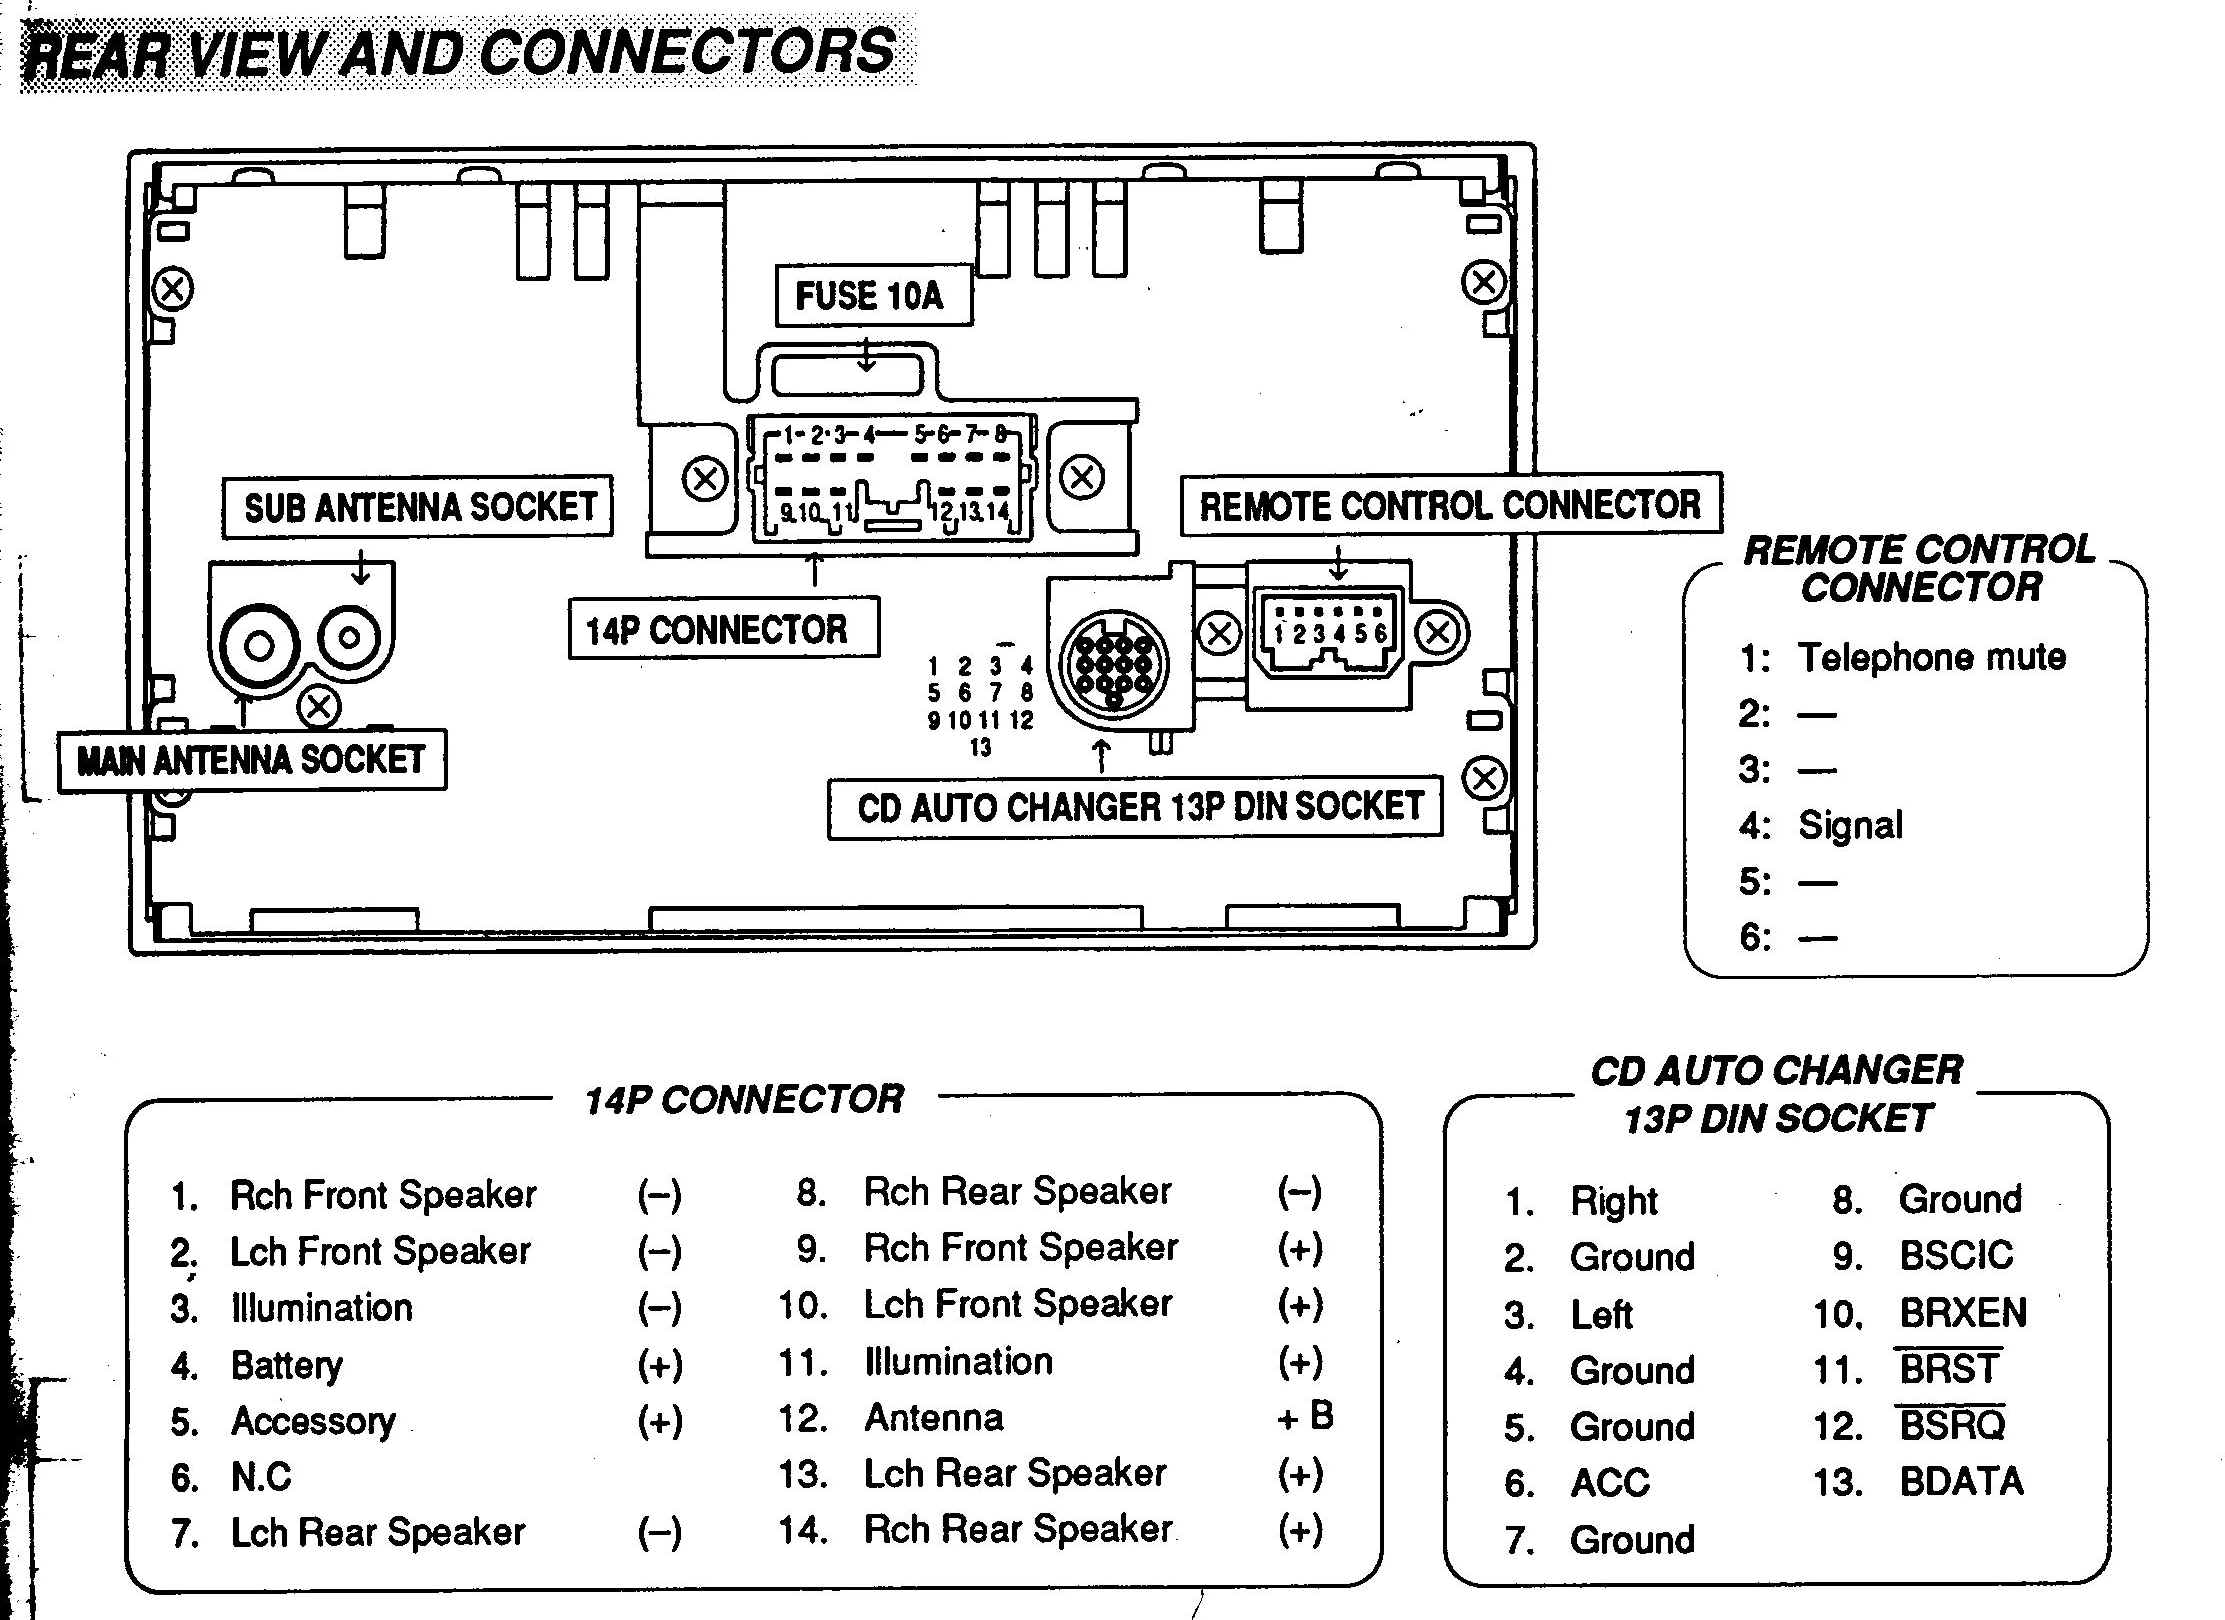 Smart Car Radio Wiring Diagram Free Download 2009 Fortwo Audio Wire Codes Mitsubishi Factory Stereo Repair